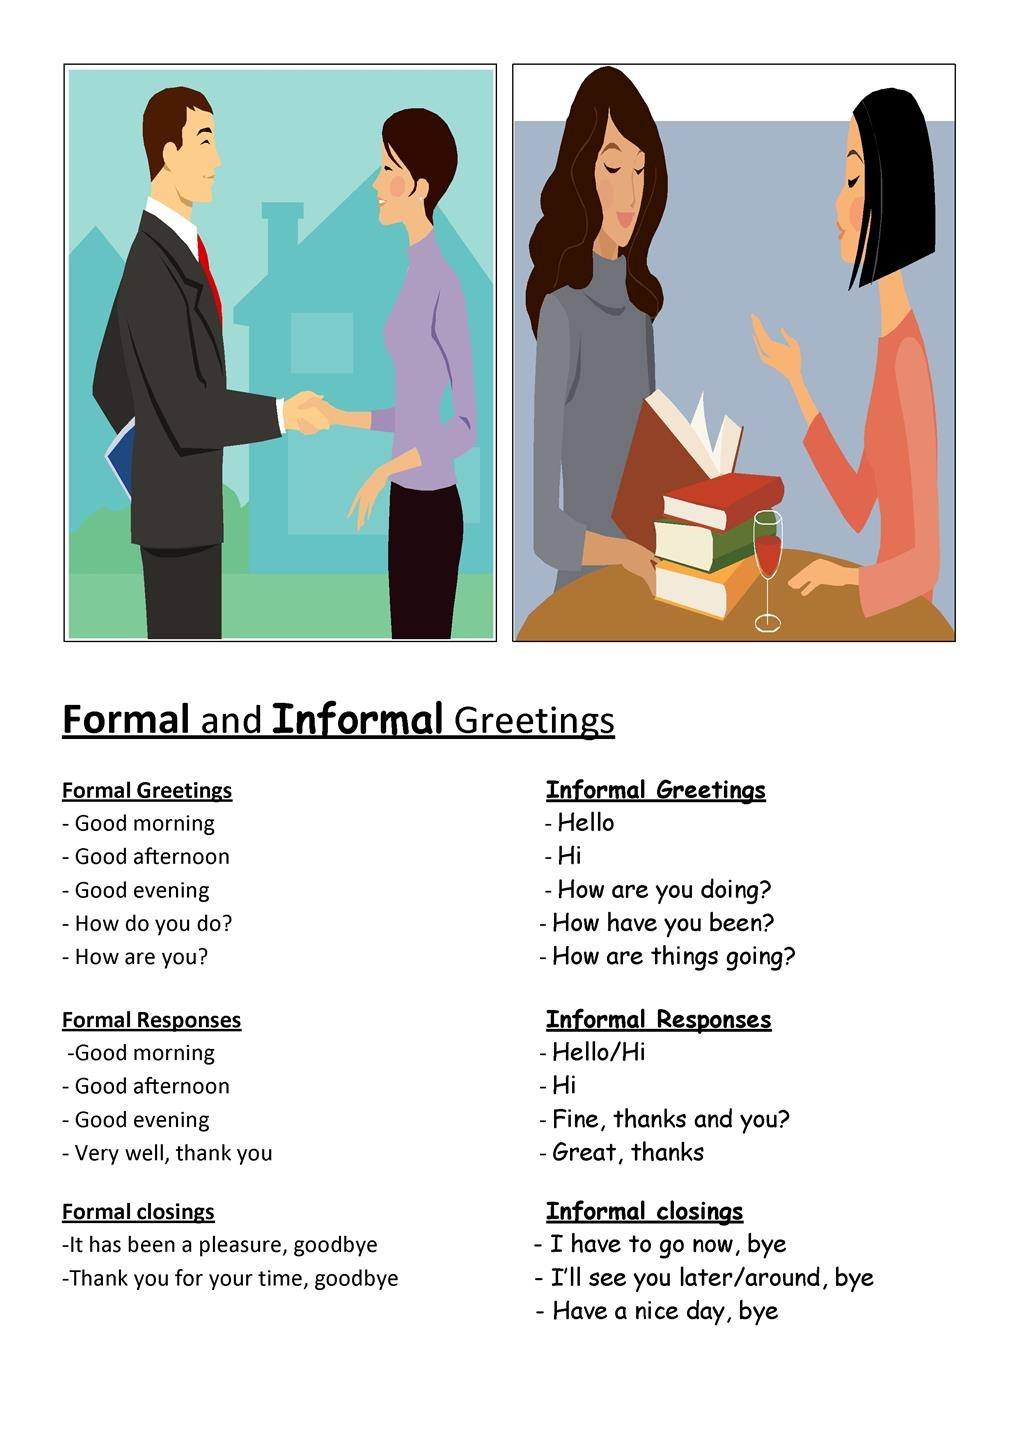 English Greeting Expressions Formal And Informal Radix Tree